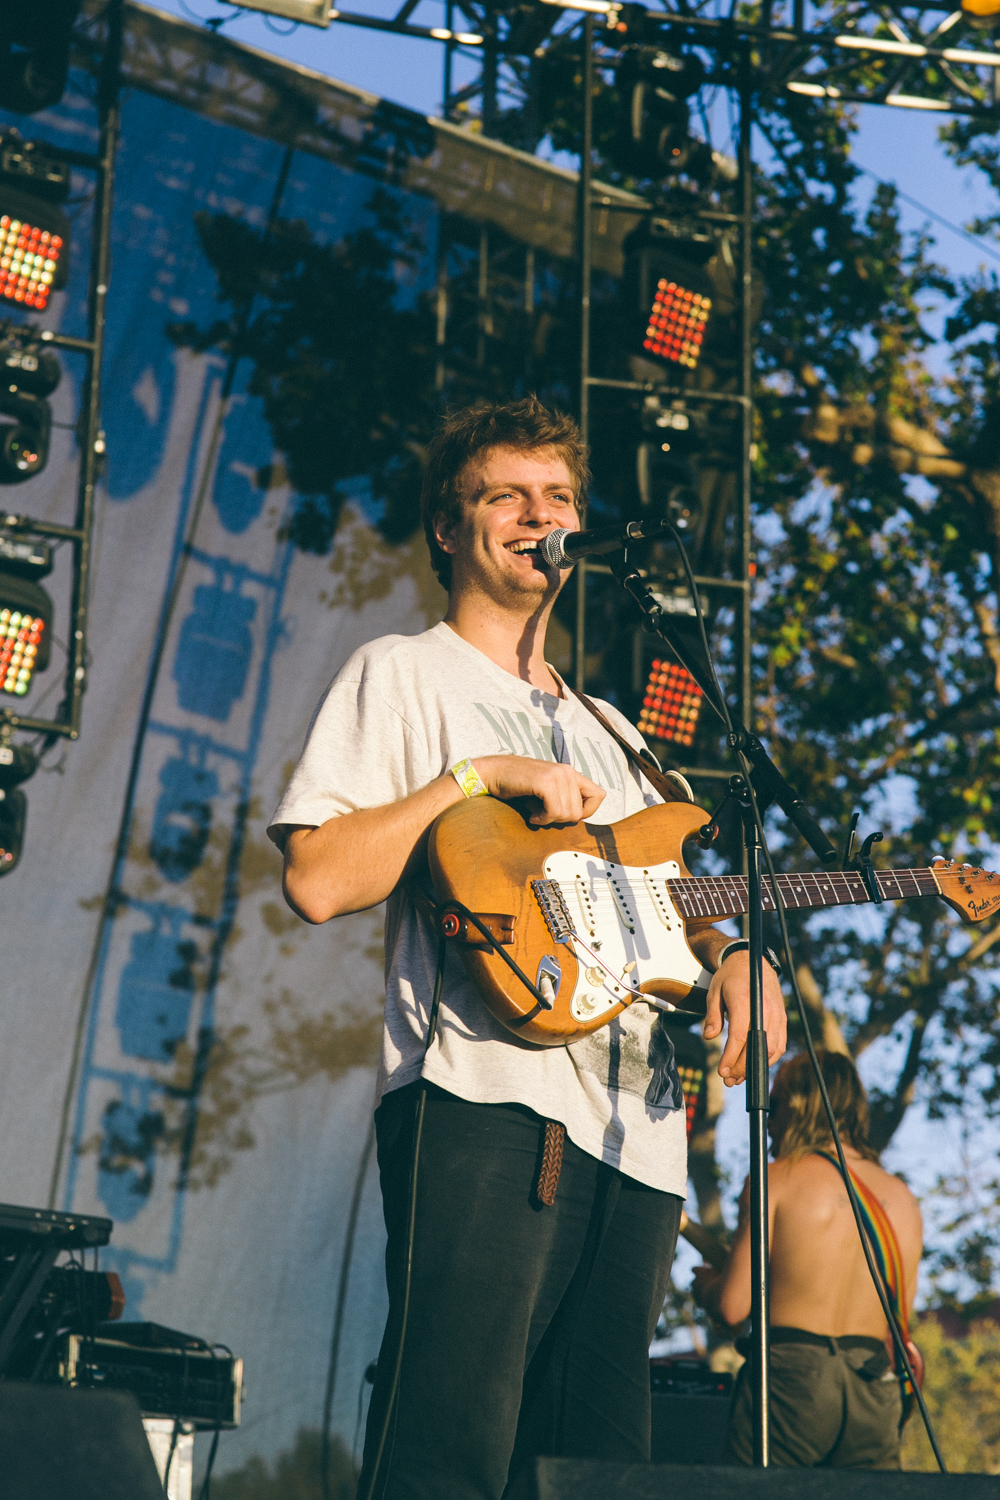 MAC DEMARCO PERFORMS AT THE 2015 FYF FESTIVAL IN LOS ANGELES. / PHOTO © KAYLA REEFER, SUSPEND MAGAZINE